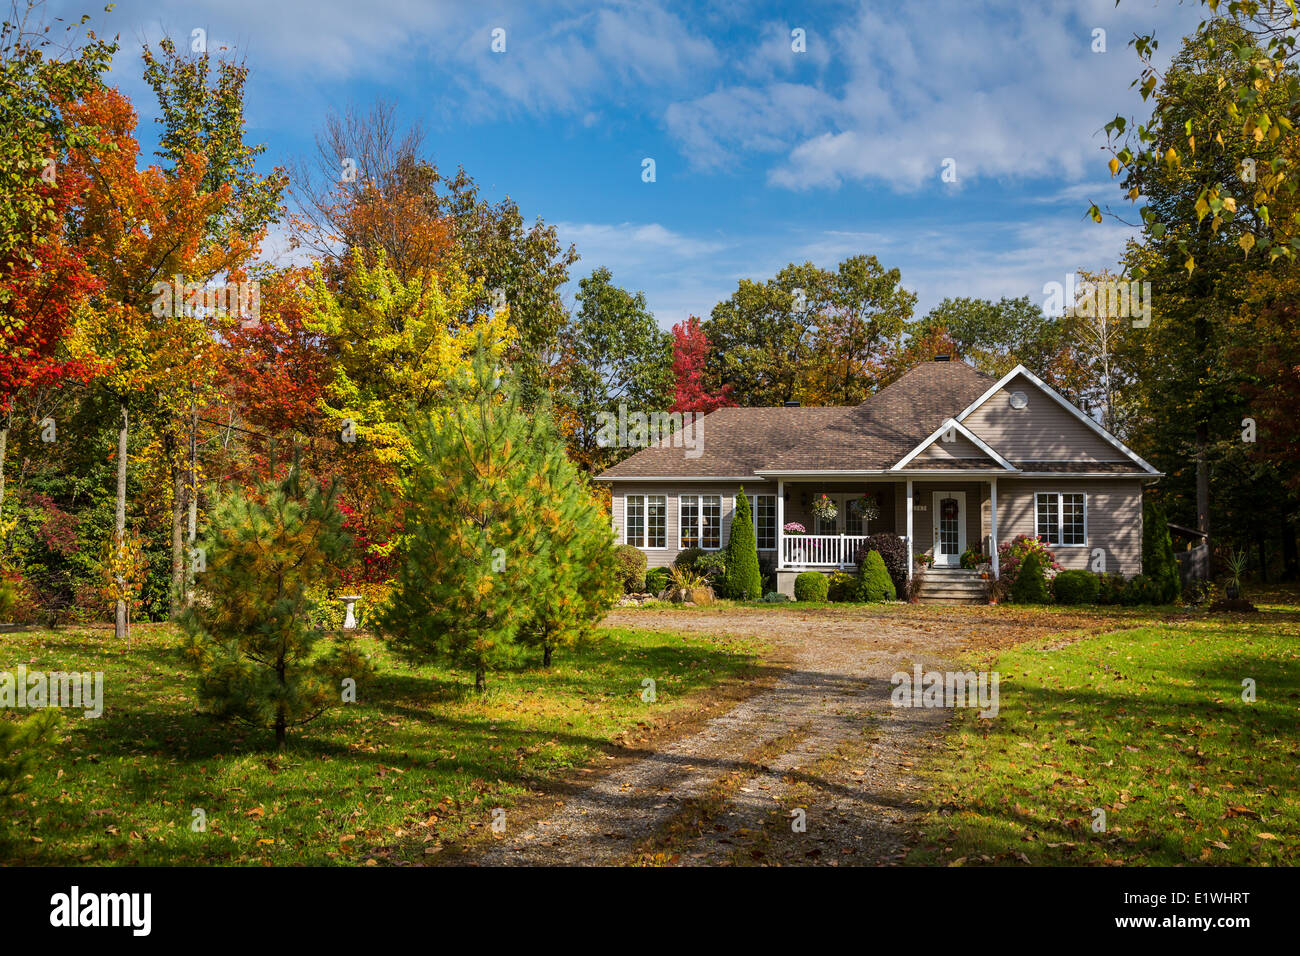 Fall Foliage Wallpaper For Computer A Rural Quebec Home In The Countryside With Fall Foliage